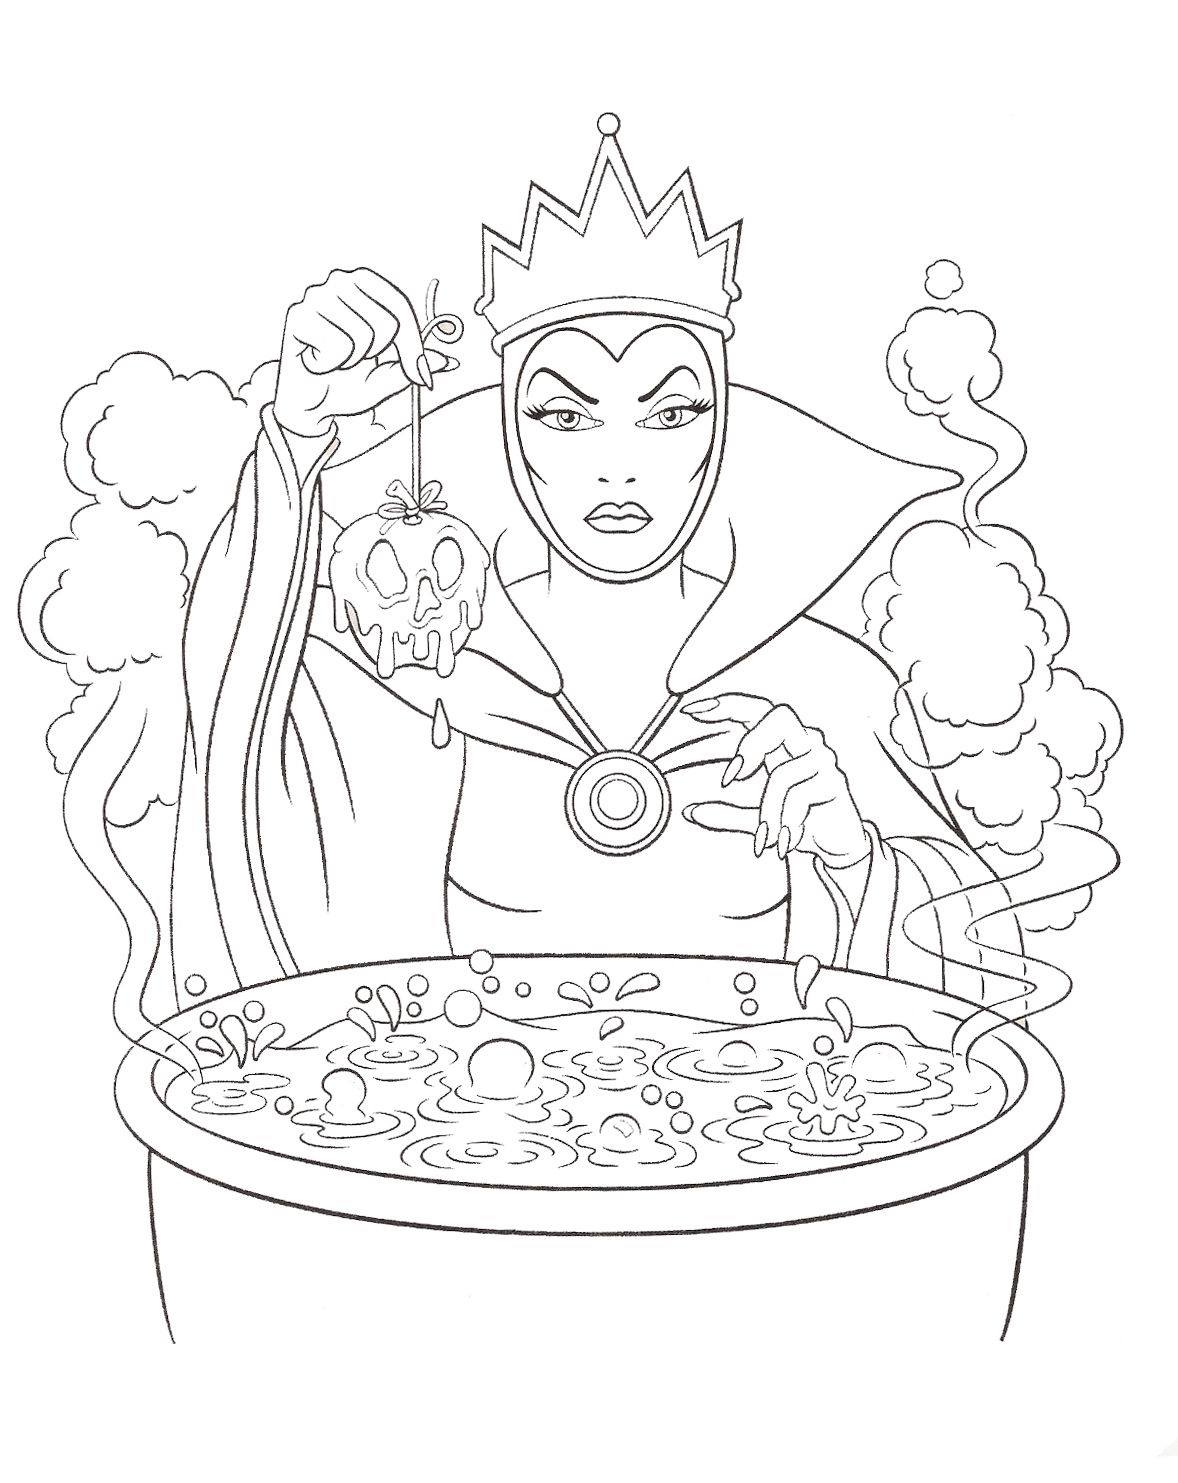 47++ Disney villains free coloring pages information